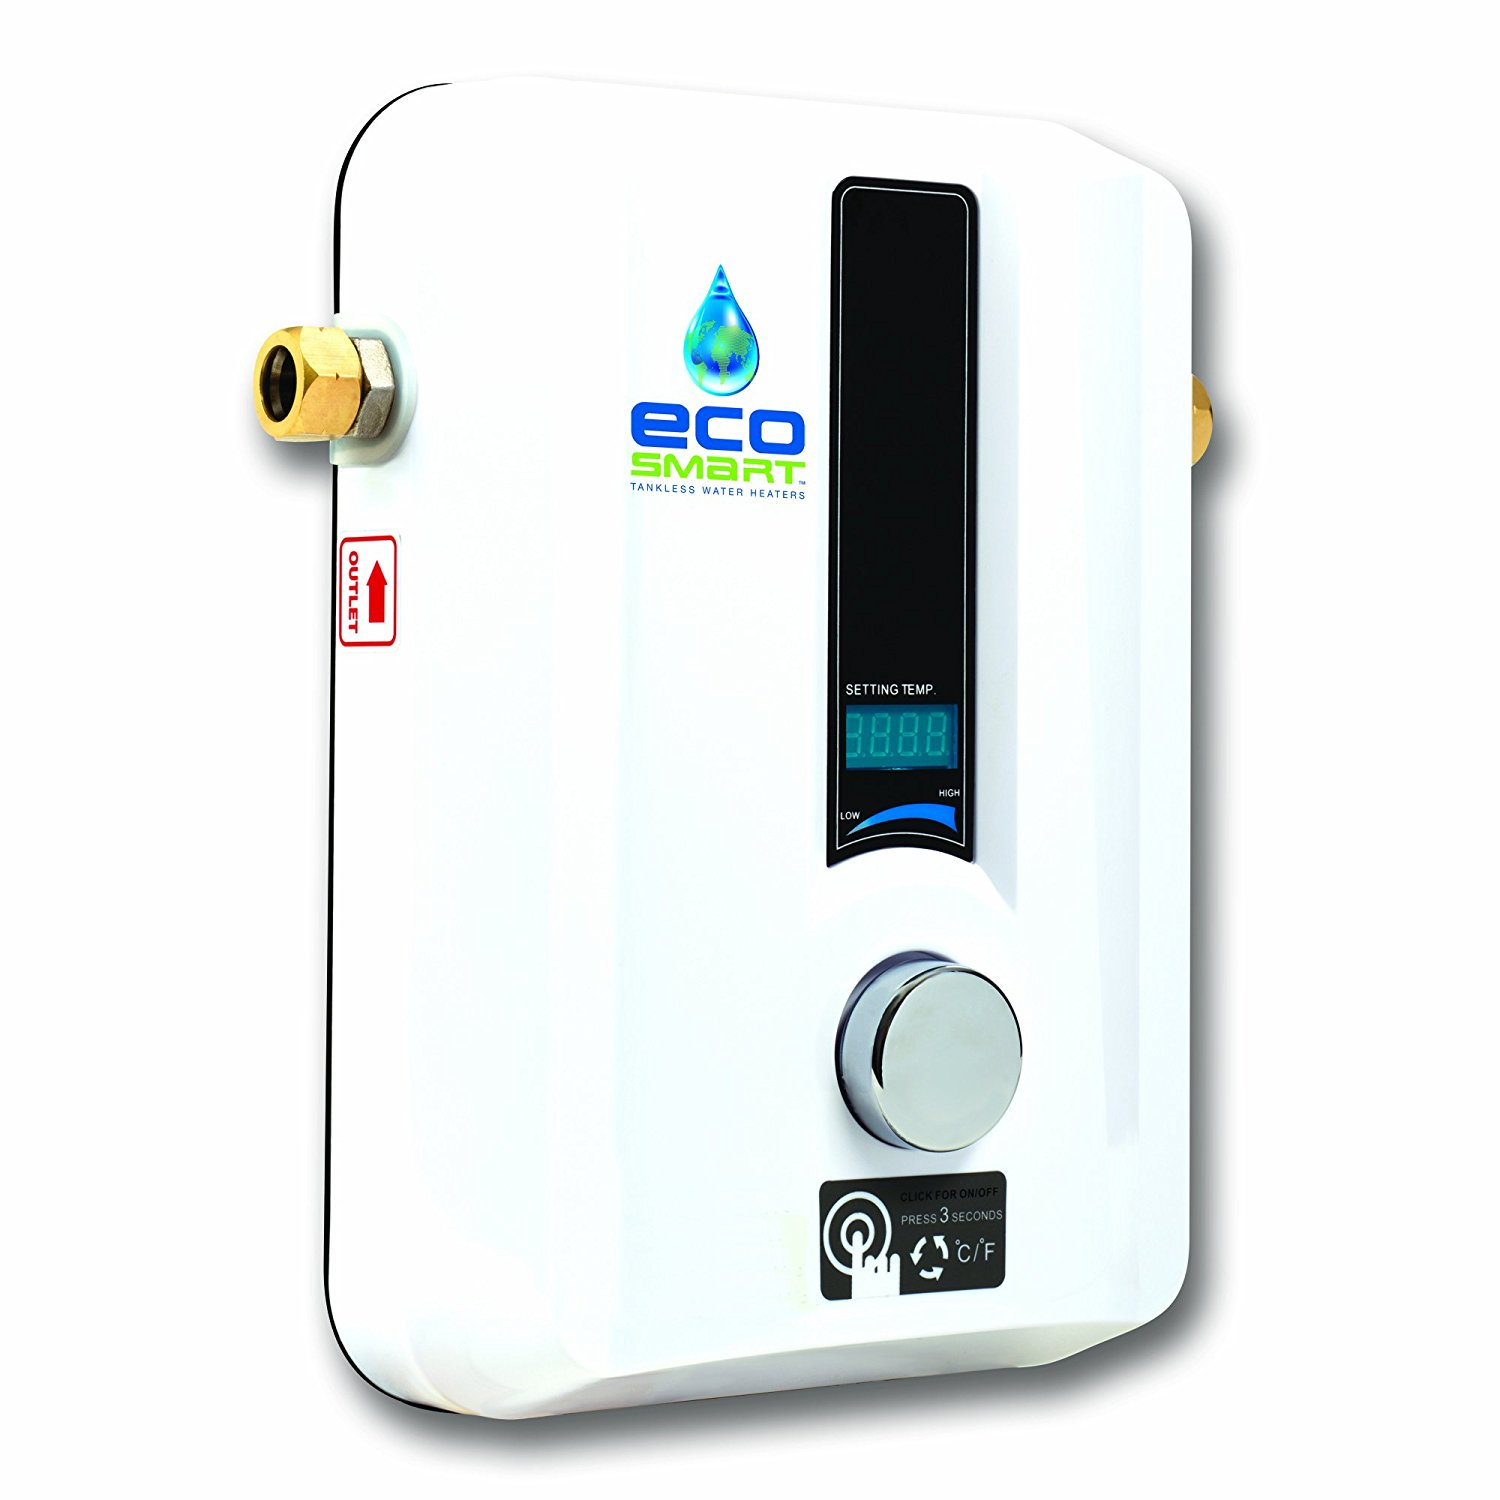 EcoSmart ECO 11 Electric Tankless Water Heater